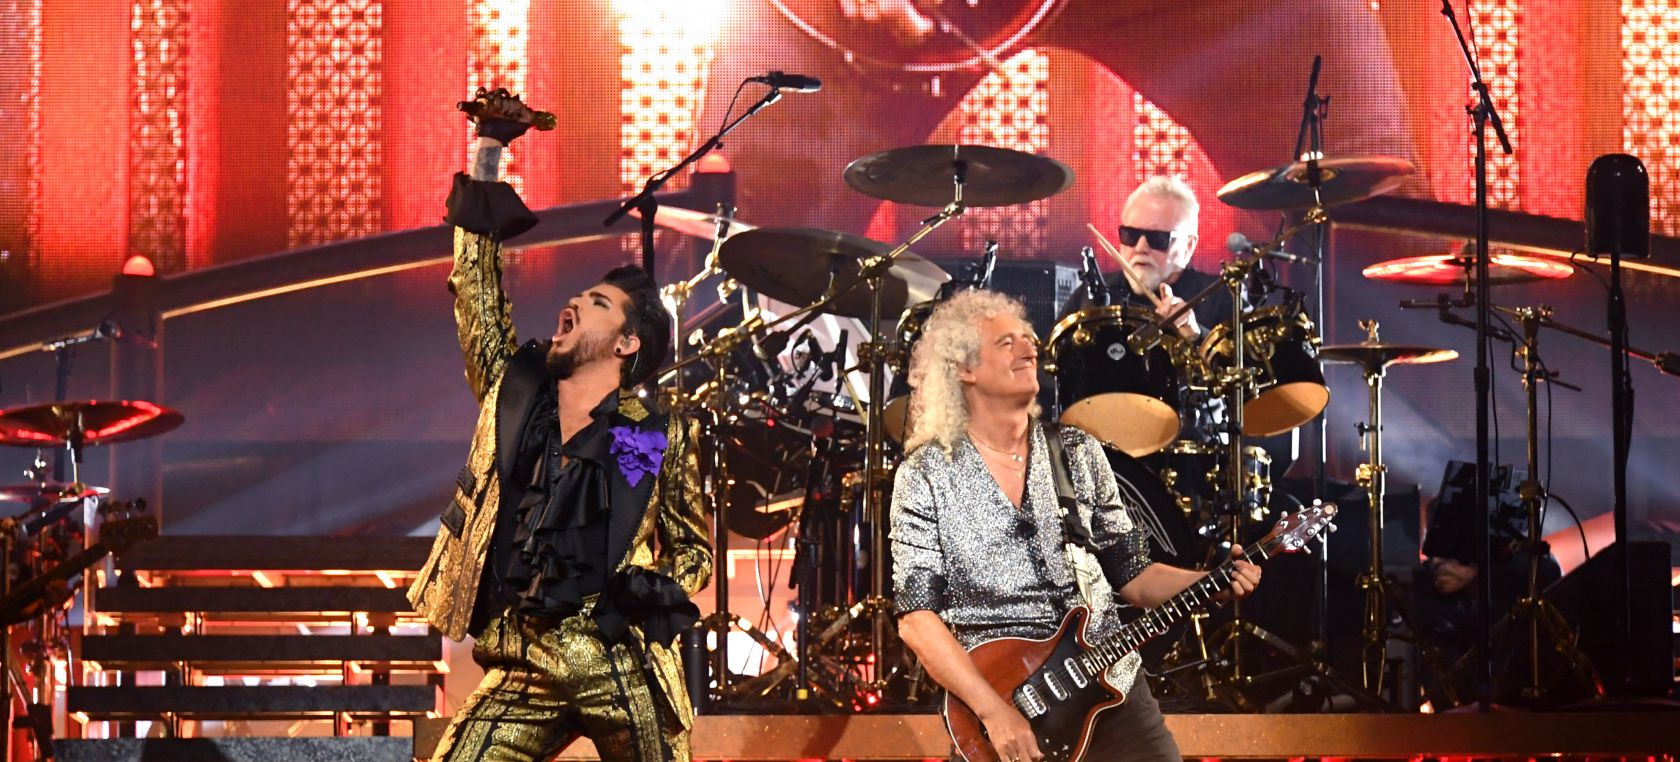 Queen publica su primer álbum en directo con Adam Lambert: 'Live around the world'